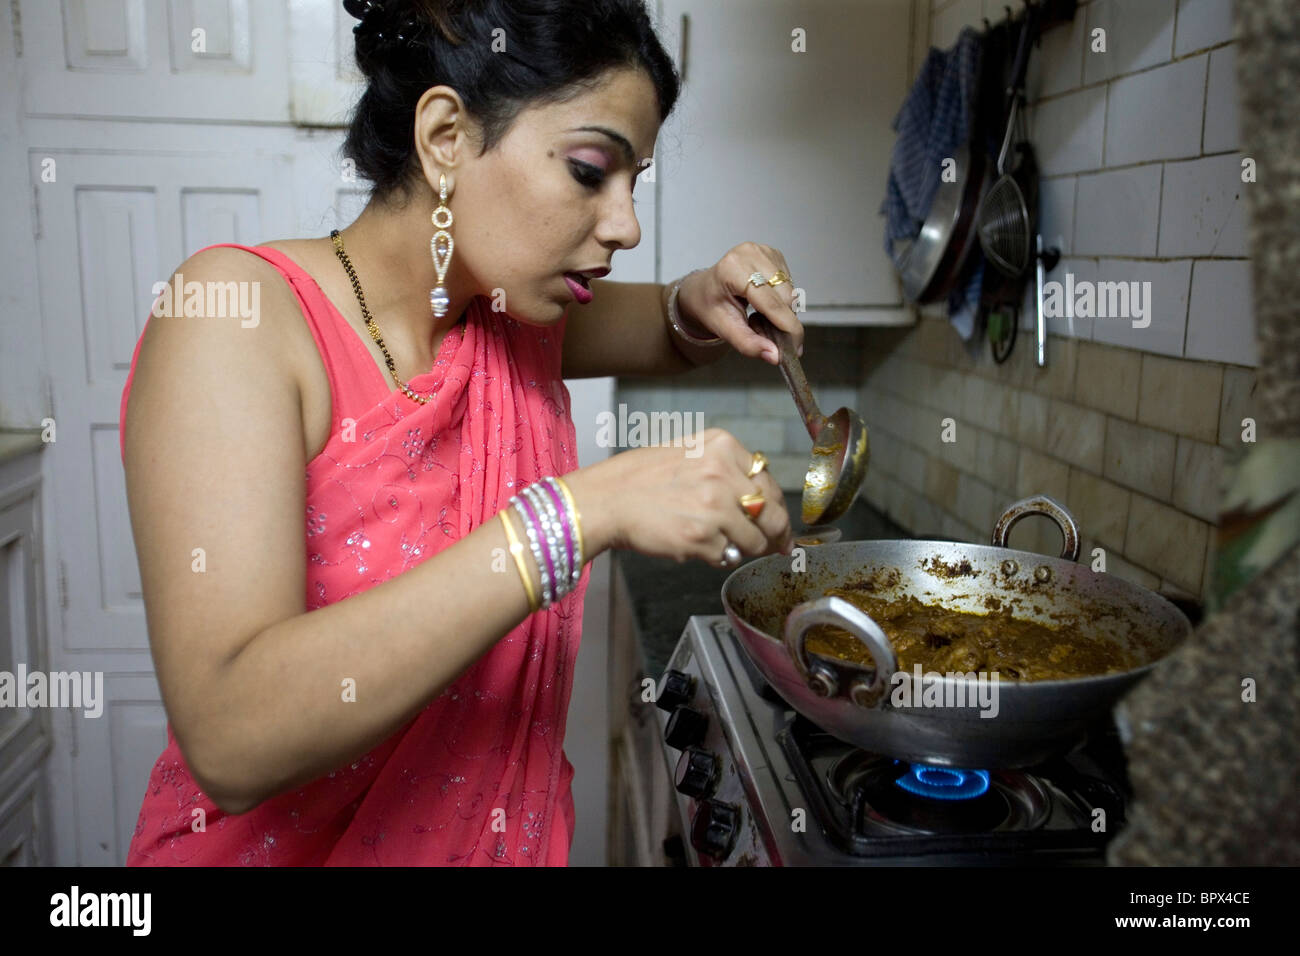 An Indian Housewife At Home In New Delhi Cooks Her Favourite Dish